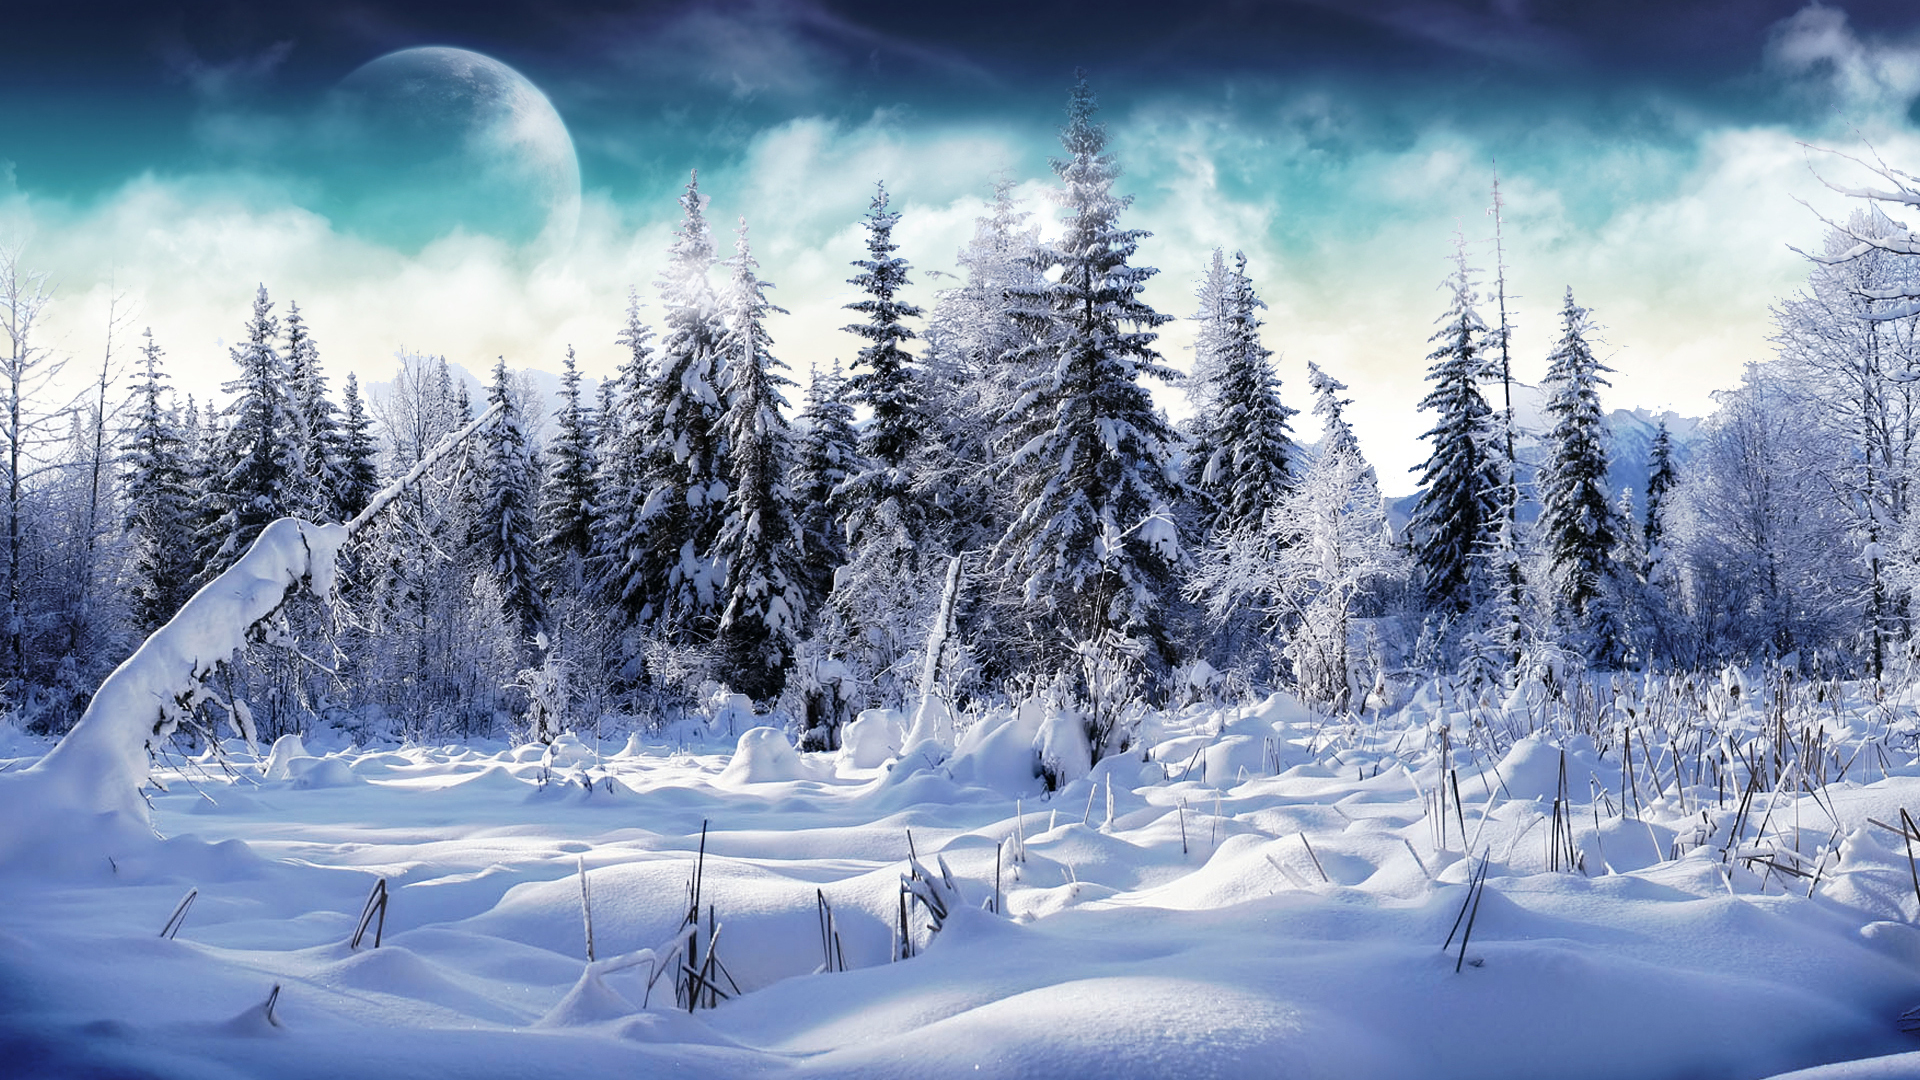 1920x1080 Winter wonderland 2 desktop PC and Mac wallpaper 1920x1080